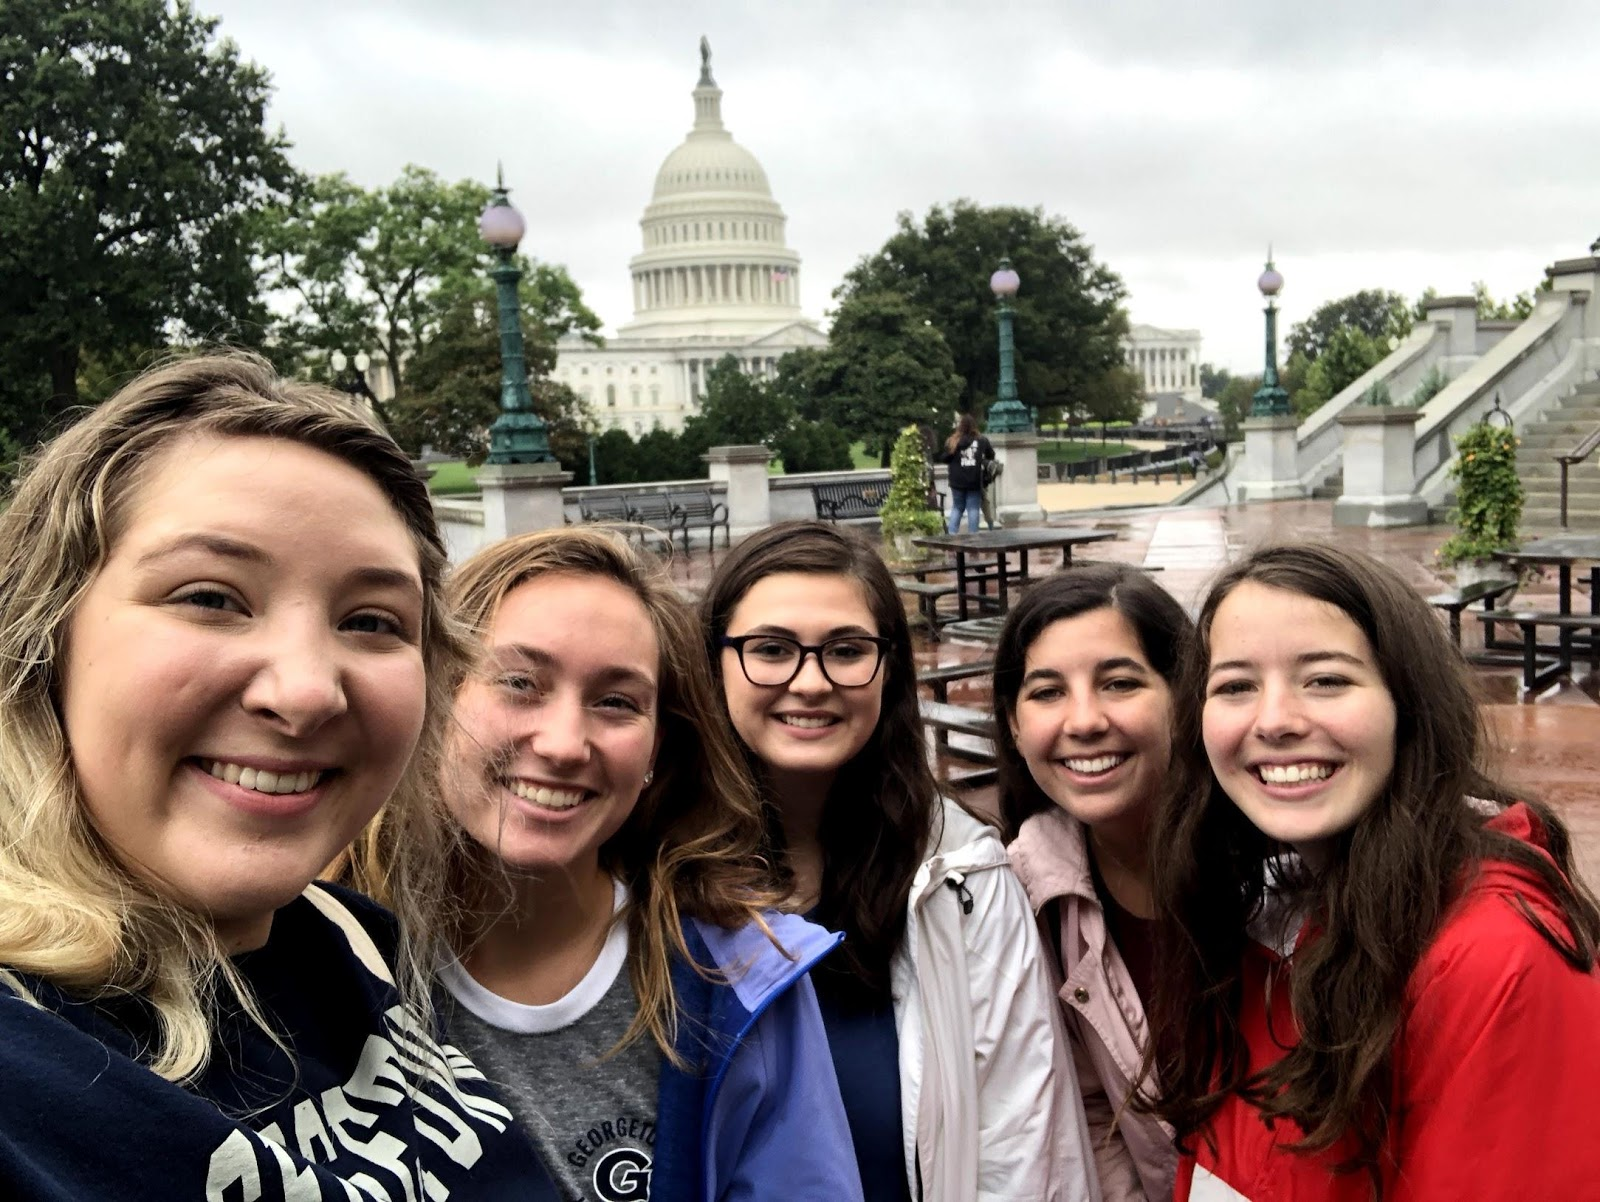 A group of students smile at the camera on Capitol Hill